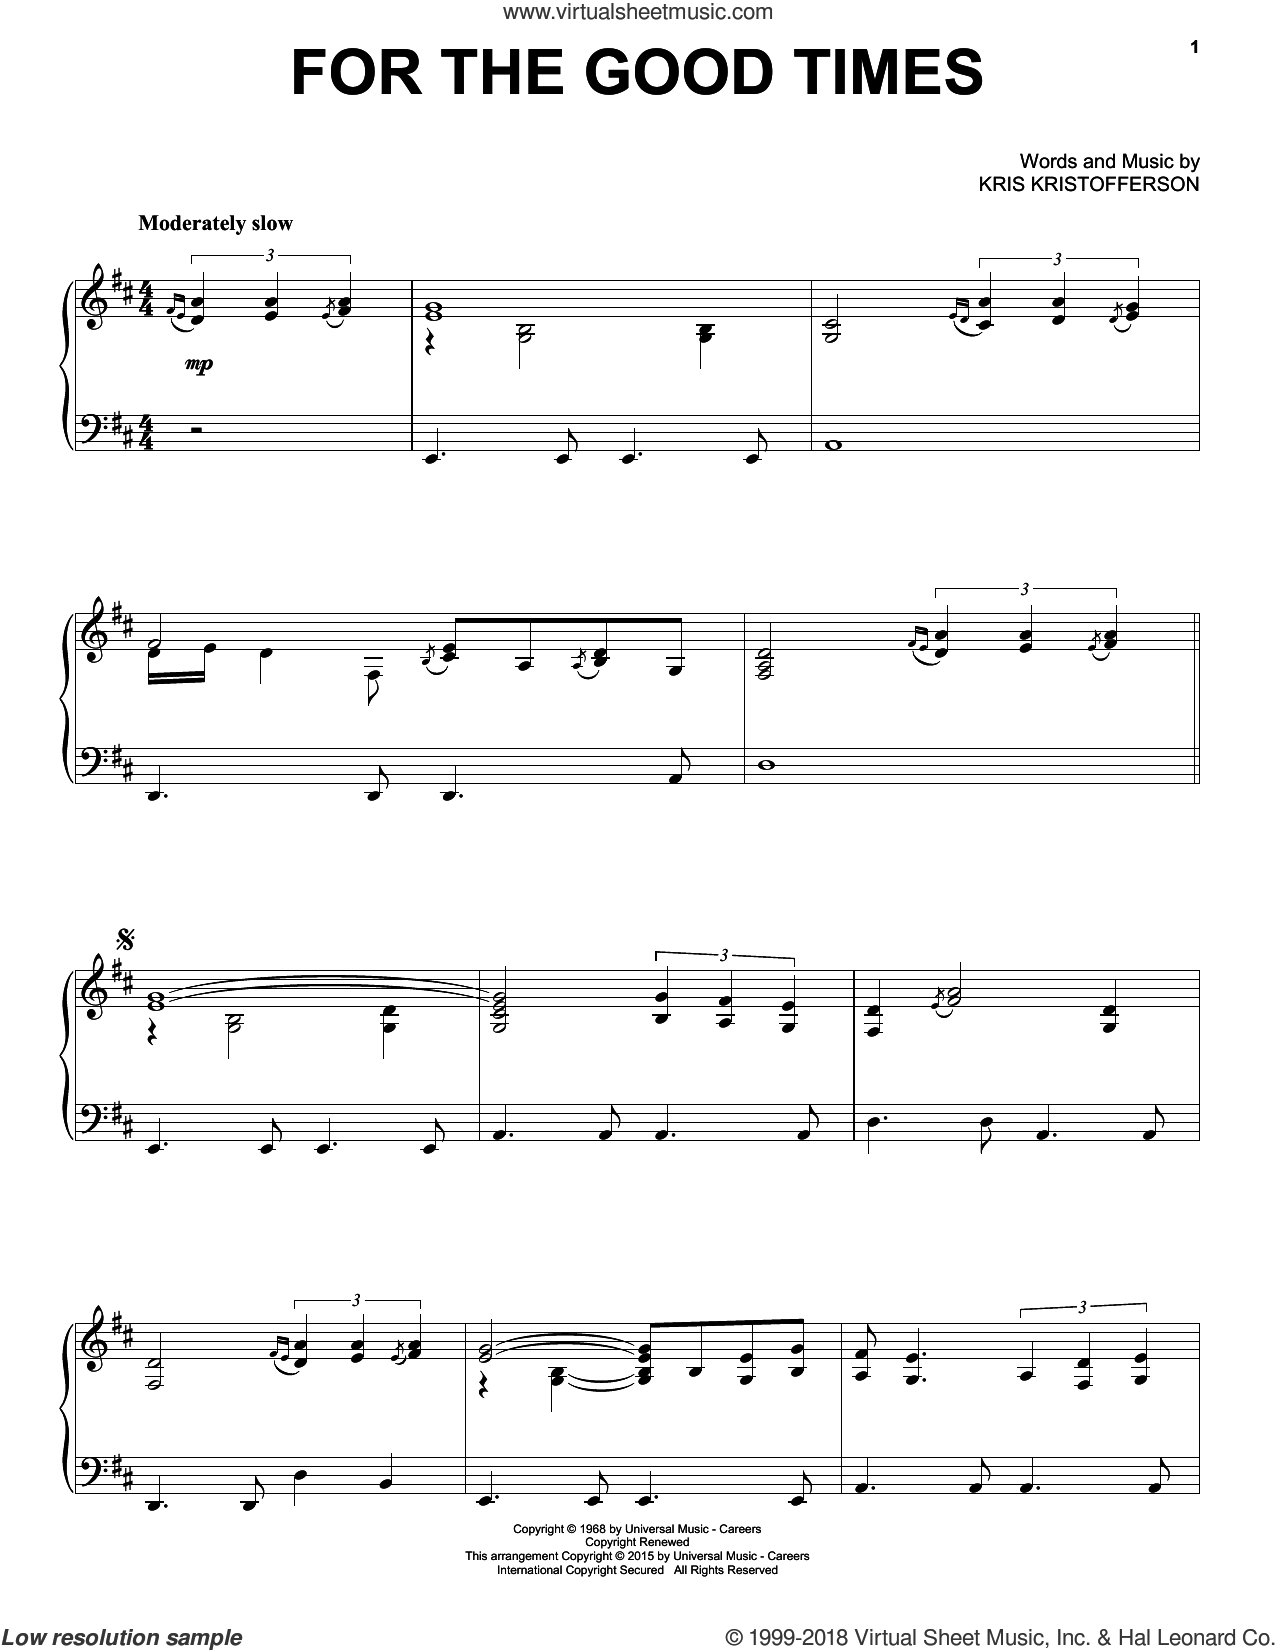 For The Good Times sheet music for piano solo by Kris Kristofferson, Elvis Presley and Ray Price, intermediate